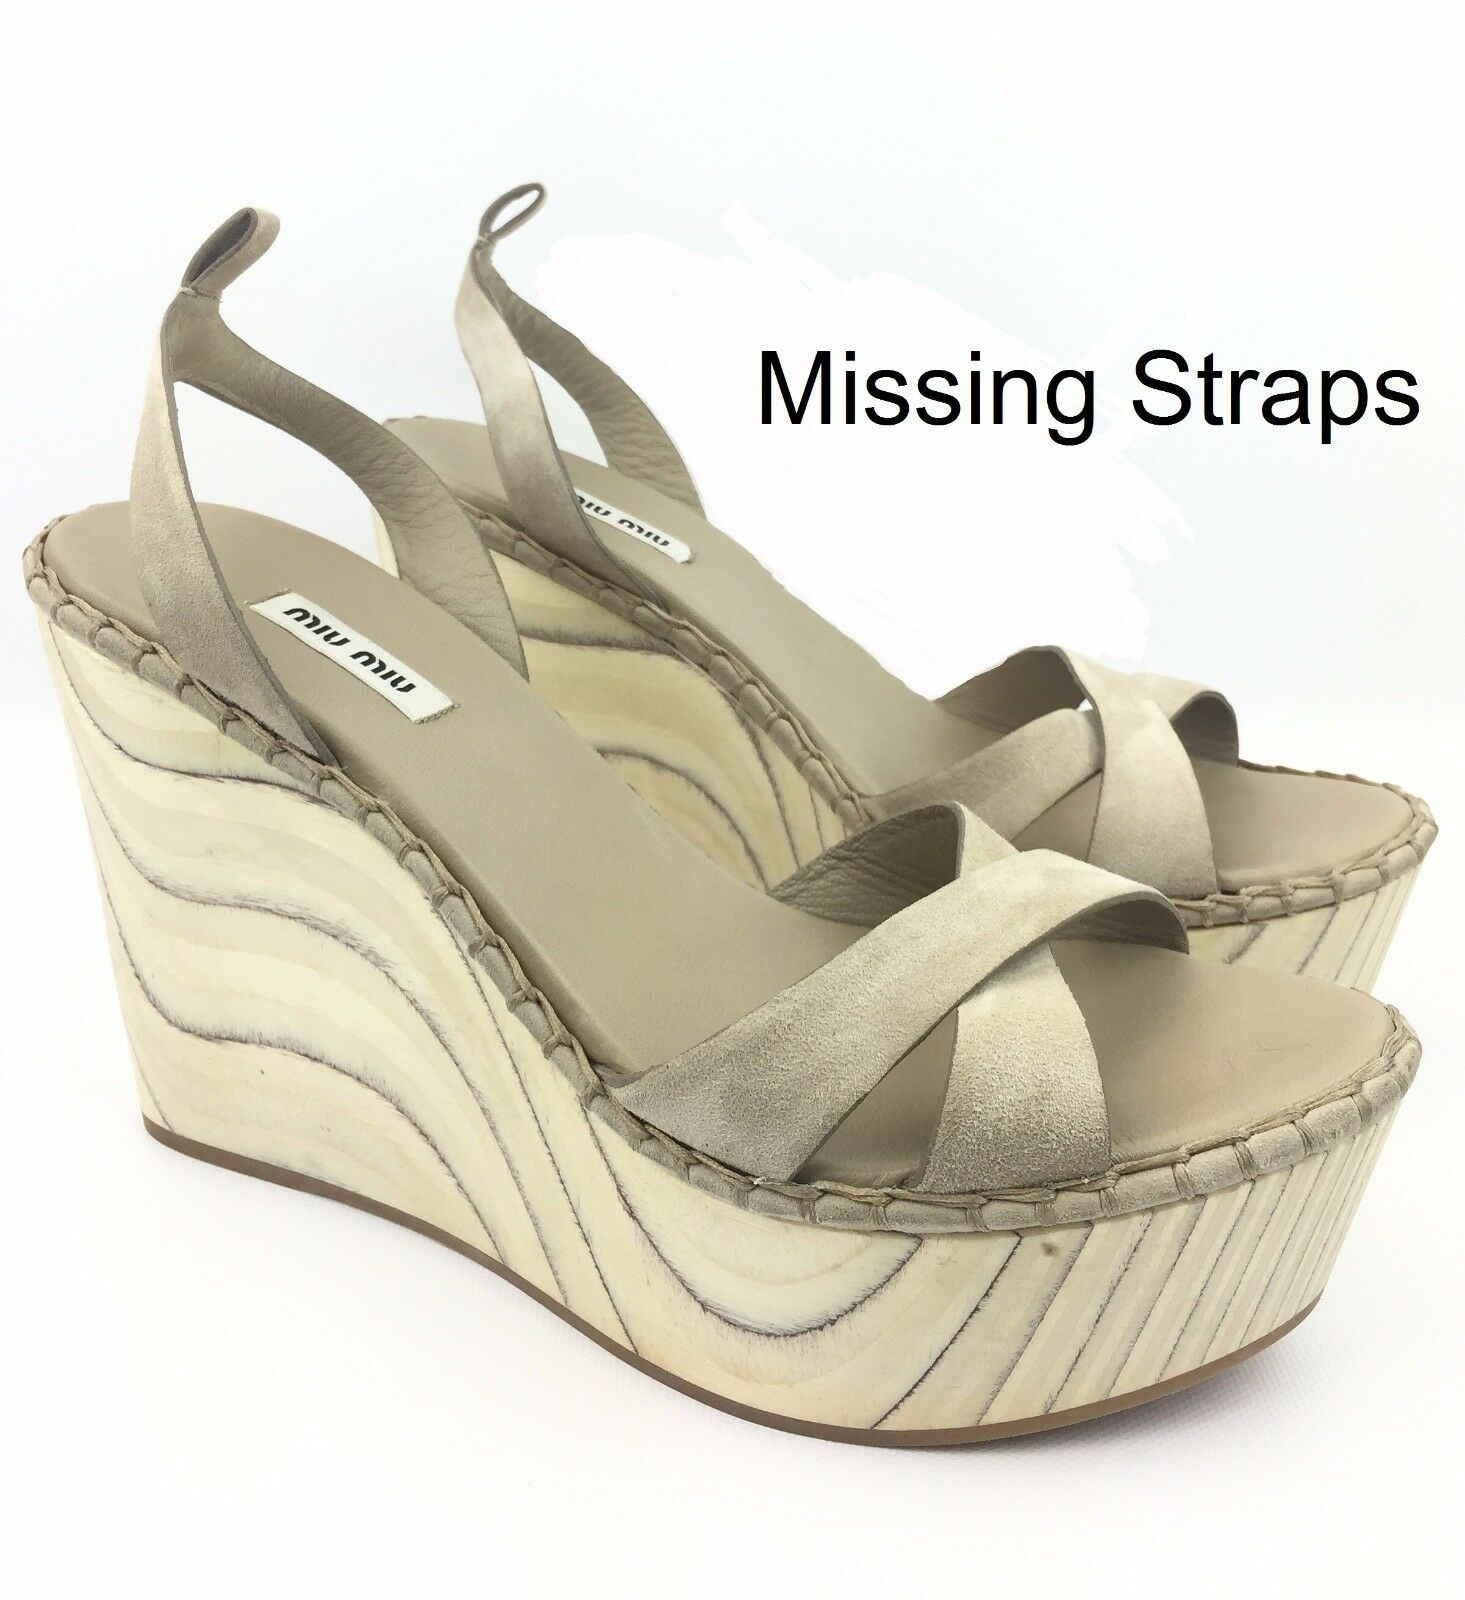 MIU MIU Criss Cross Suede/Wood Platform Wedges Sandals sz: US 10 | 40 -  750